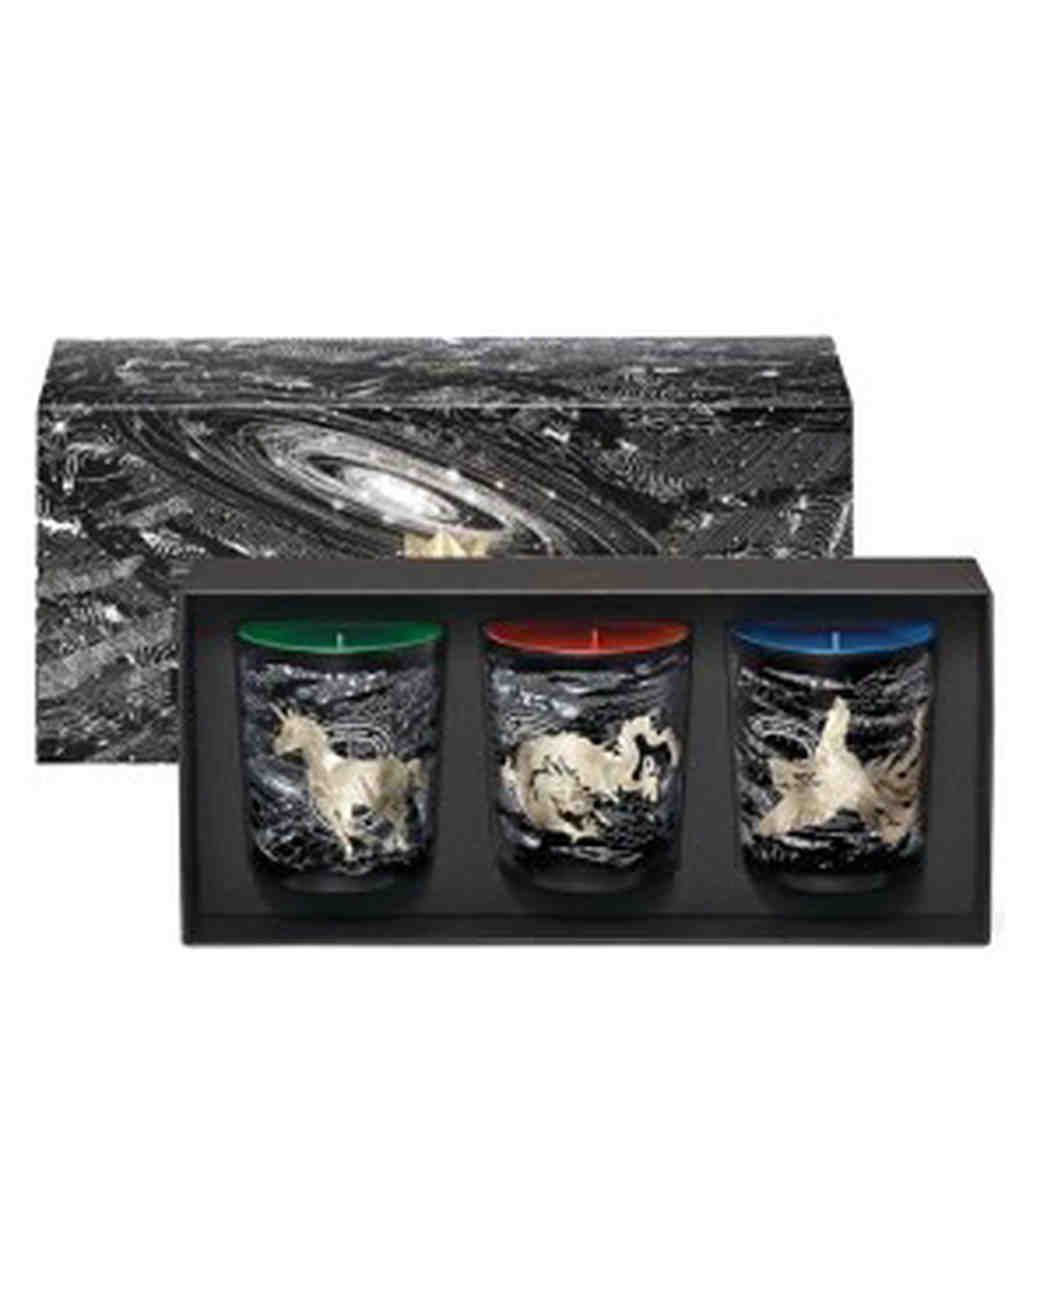 Diptyque Limited-Edition Holiday Candles